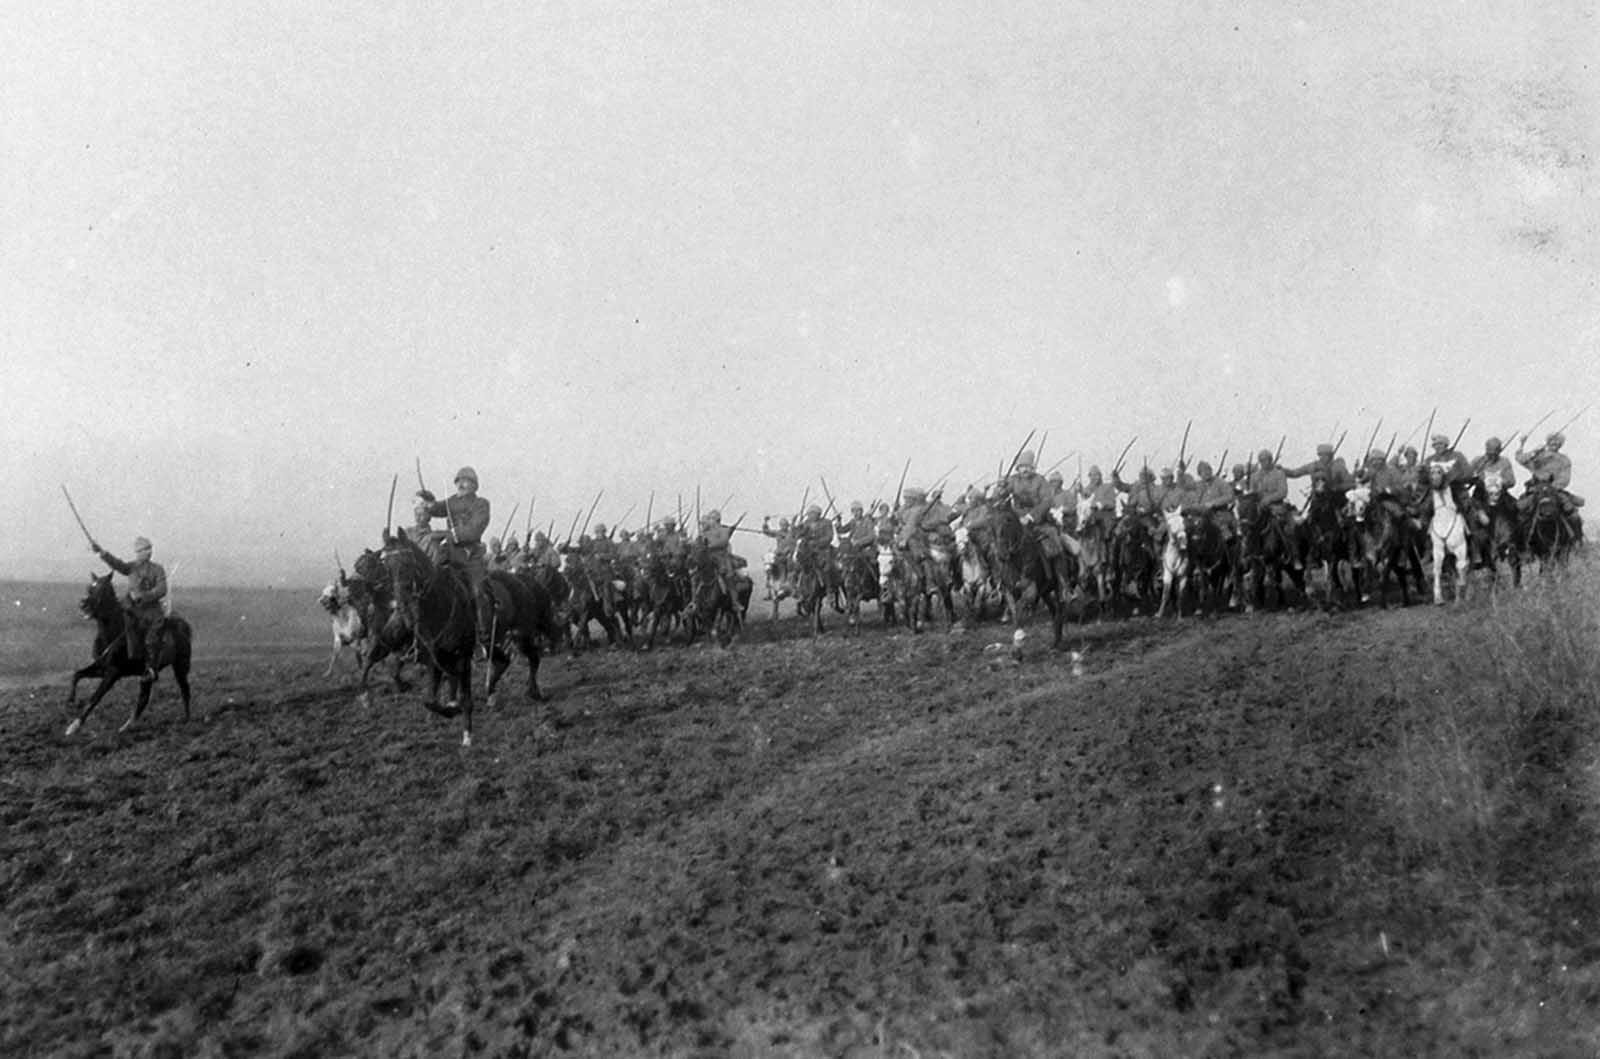 Turkish cavalry exercises on the Saloniki front, Turkey, March of 1917.